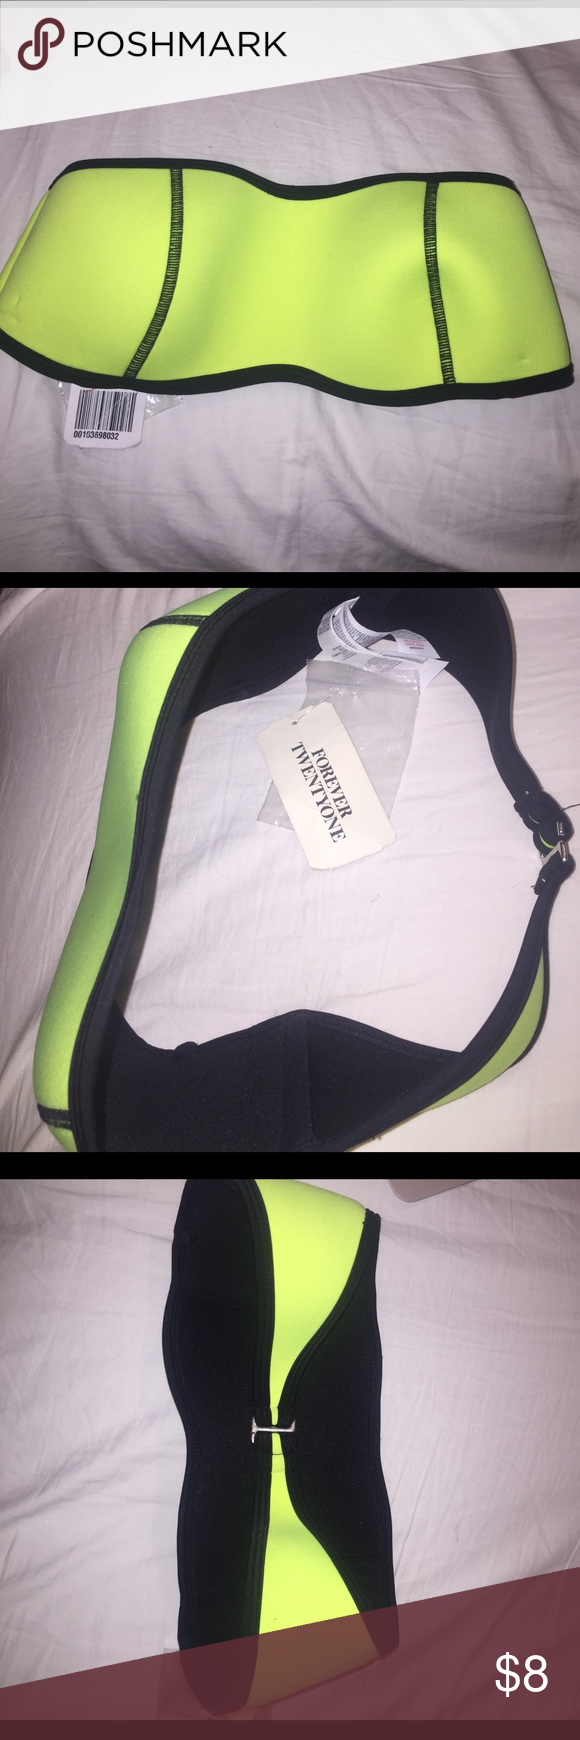 NWT F21 Bandeau bikini top Brand new, never worn. Tags still attached, size Small. Tiny mark on right side as pictured but hardly noticeable at all! Forever 21 Swim Bikinis